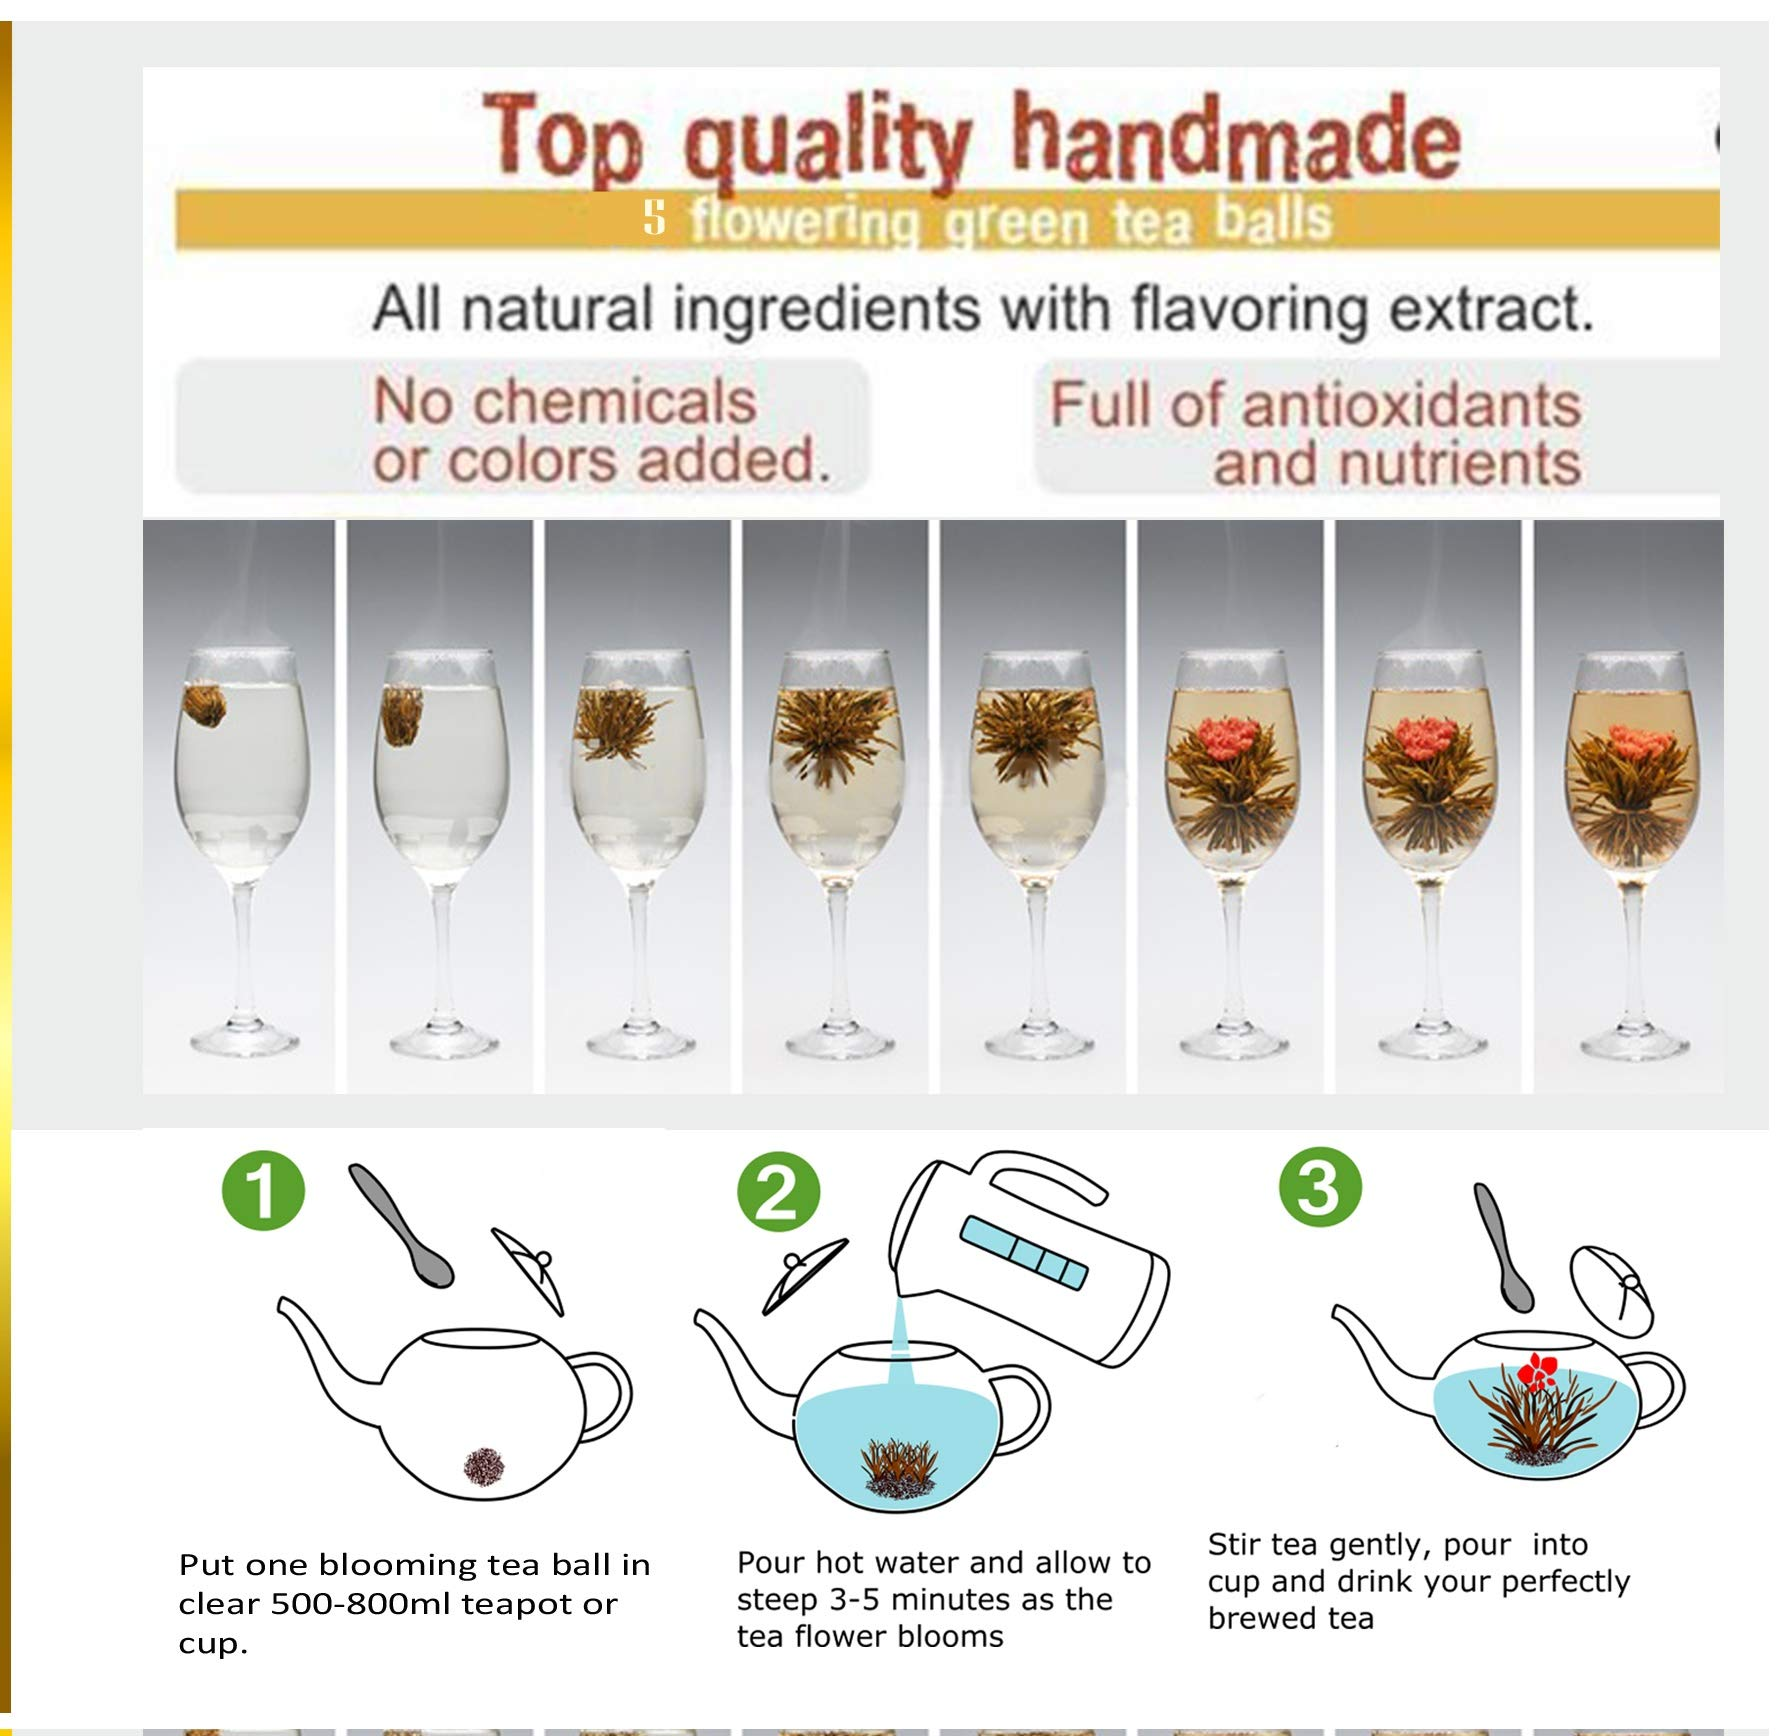 Five Star Gift Blooming Tea Set: 750ml Glass Teapot with Filter Infuser with 5 Flowering Tea Balls